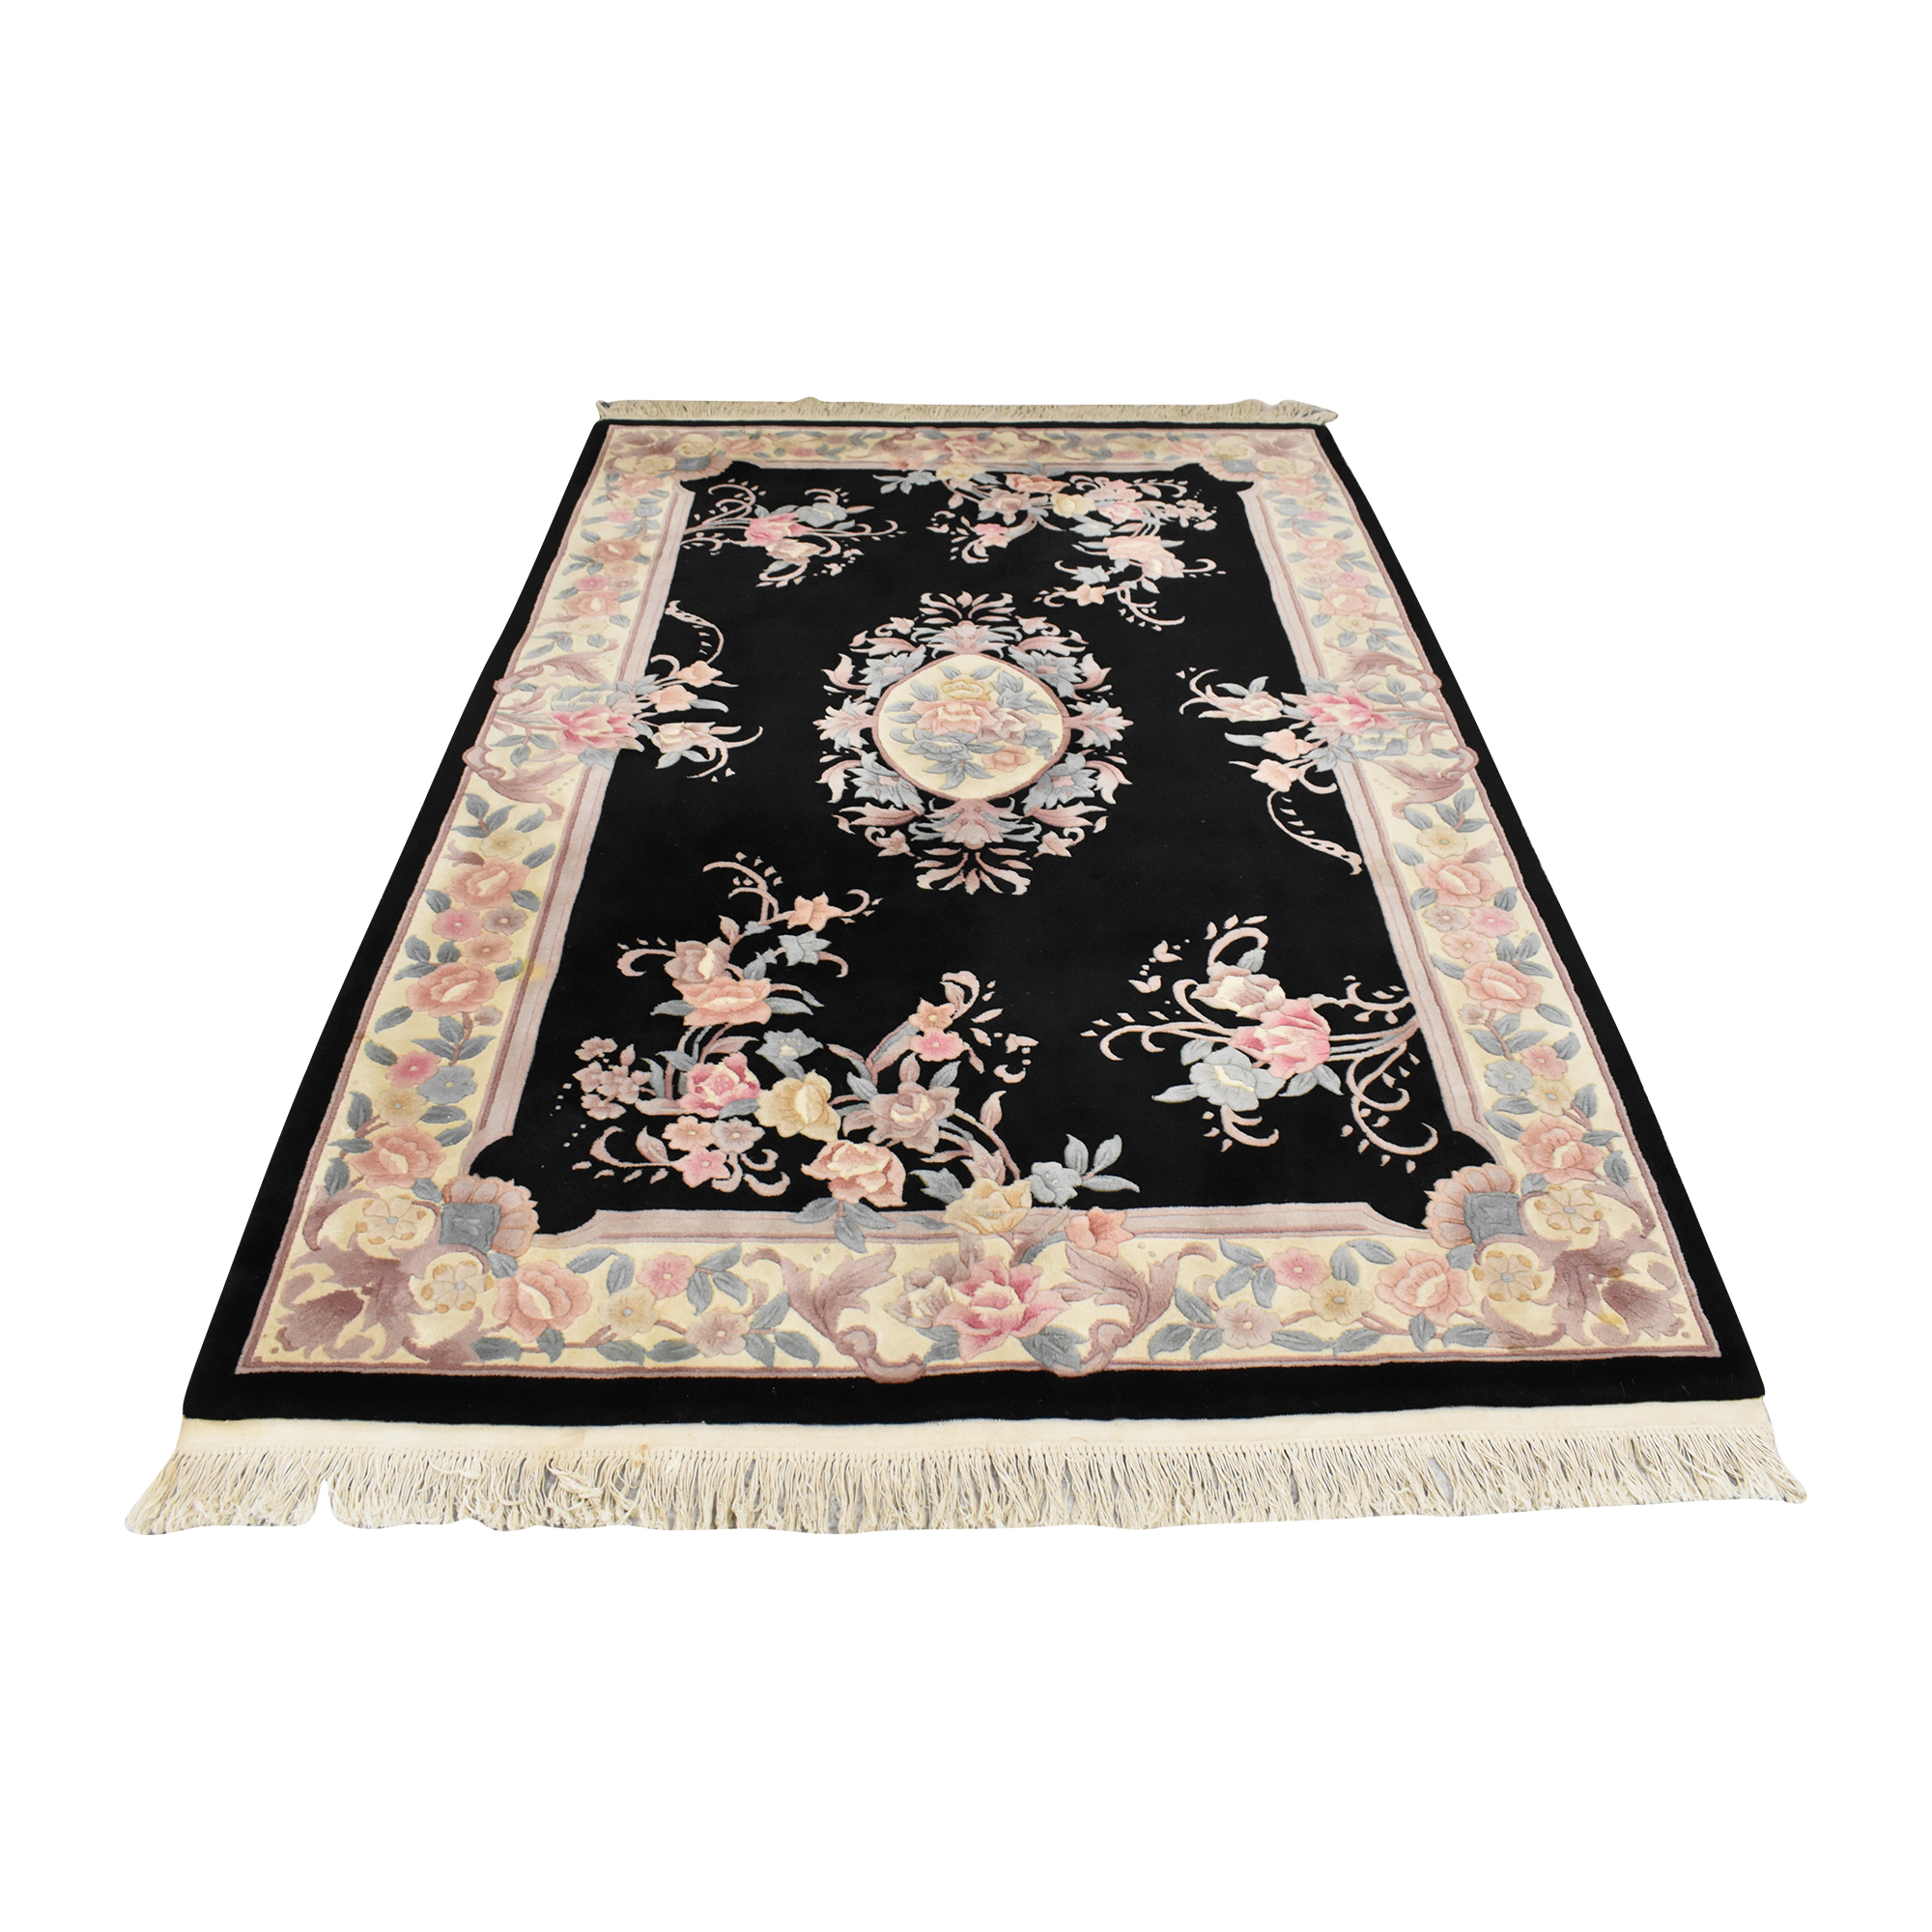 Floral Area Rug for sale